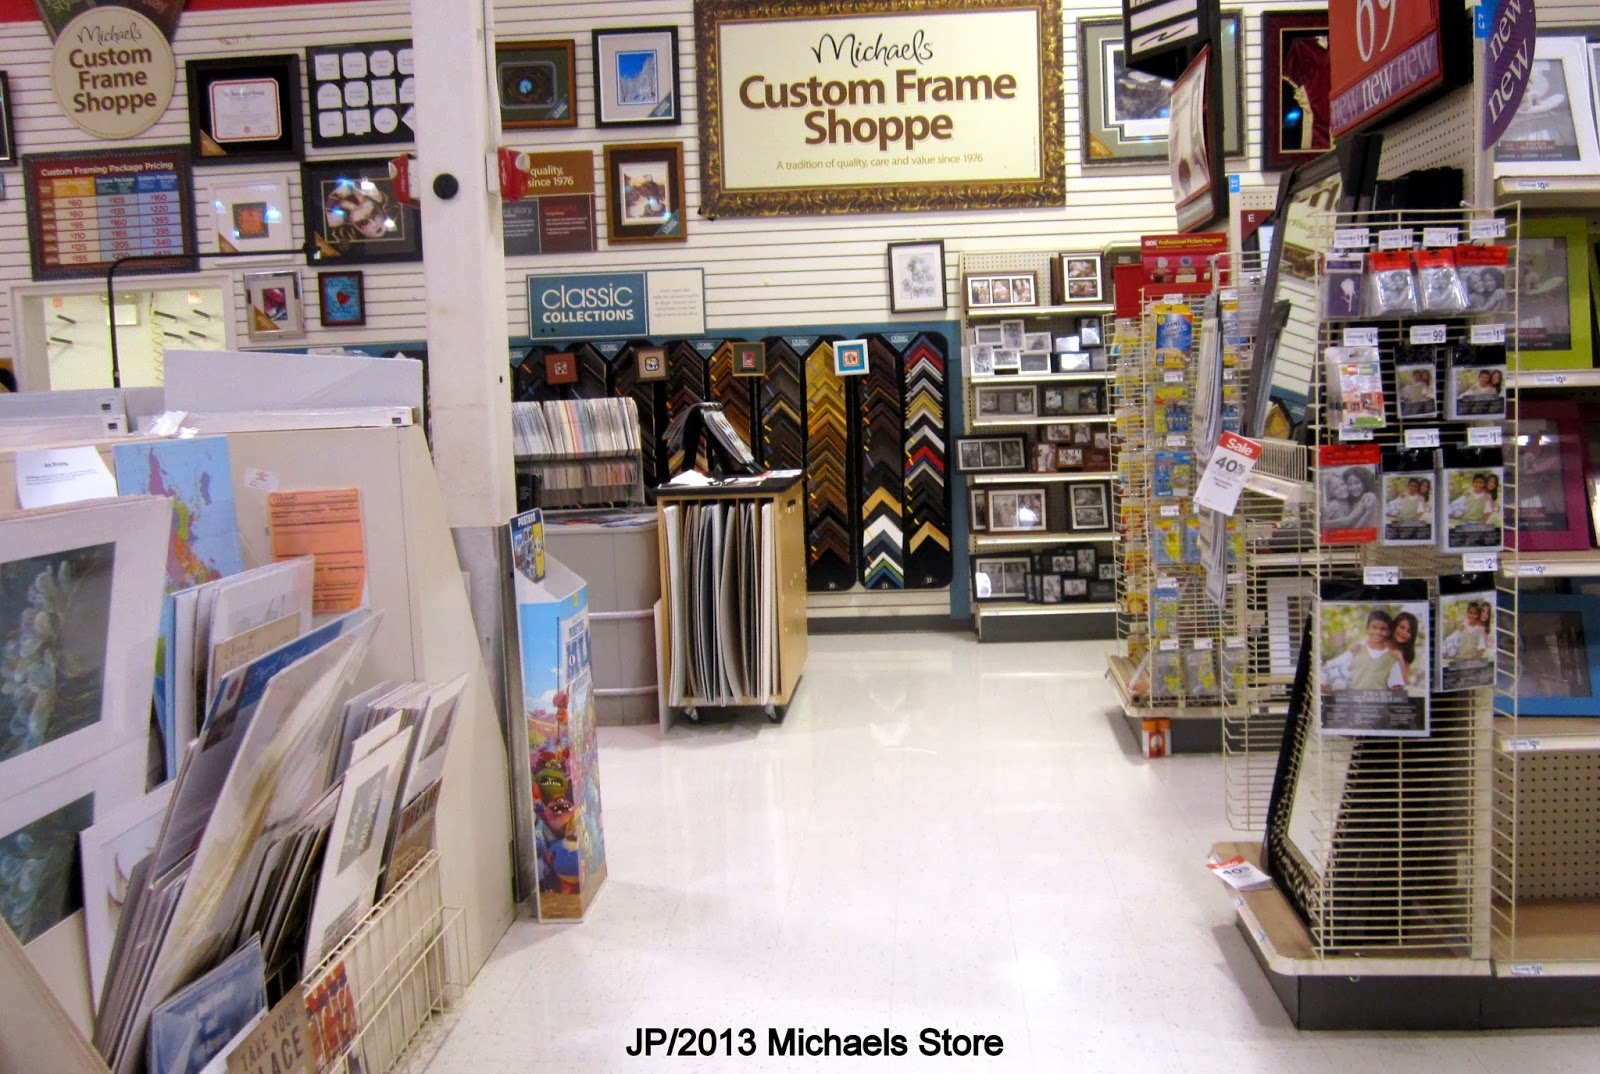 michaels macon georgia presidential parkway michaels arts and crafts hobby store macon ga michaels arts crafts hobby store macon georgia